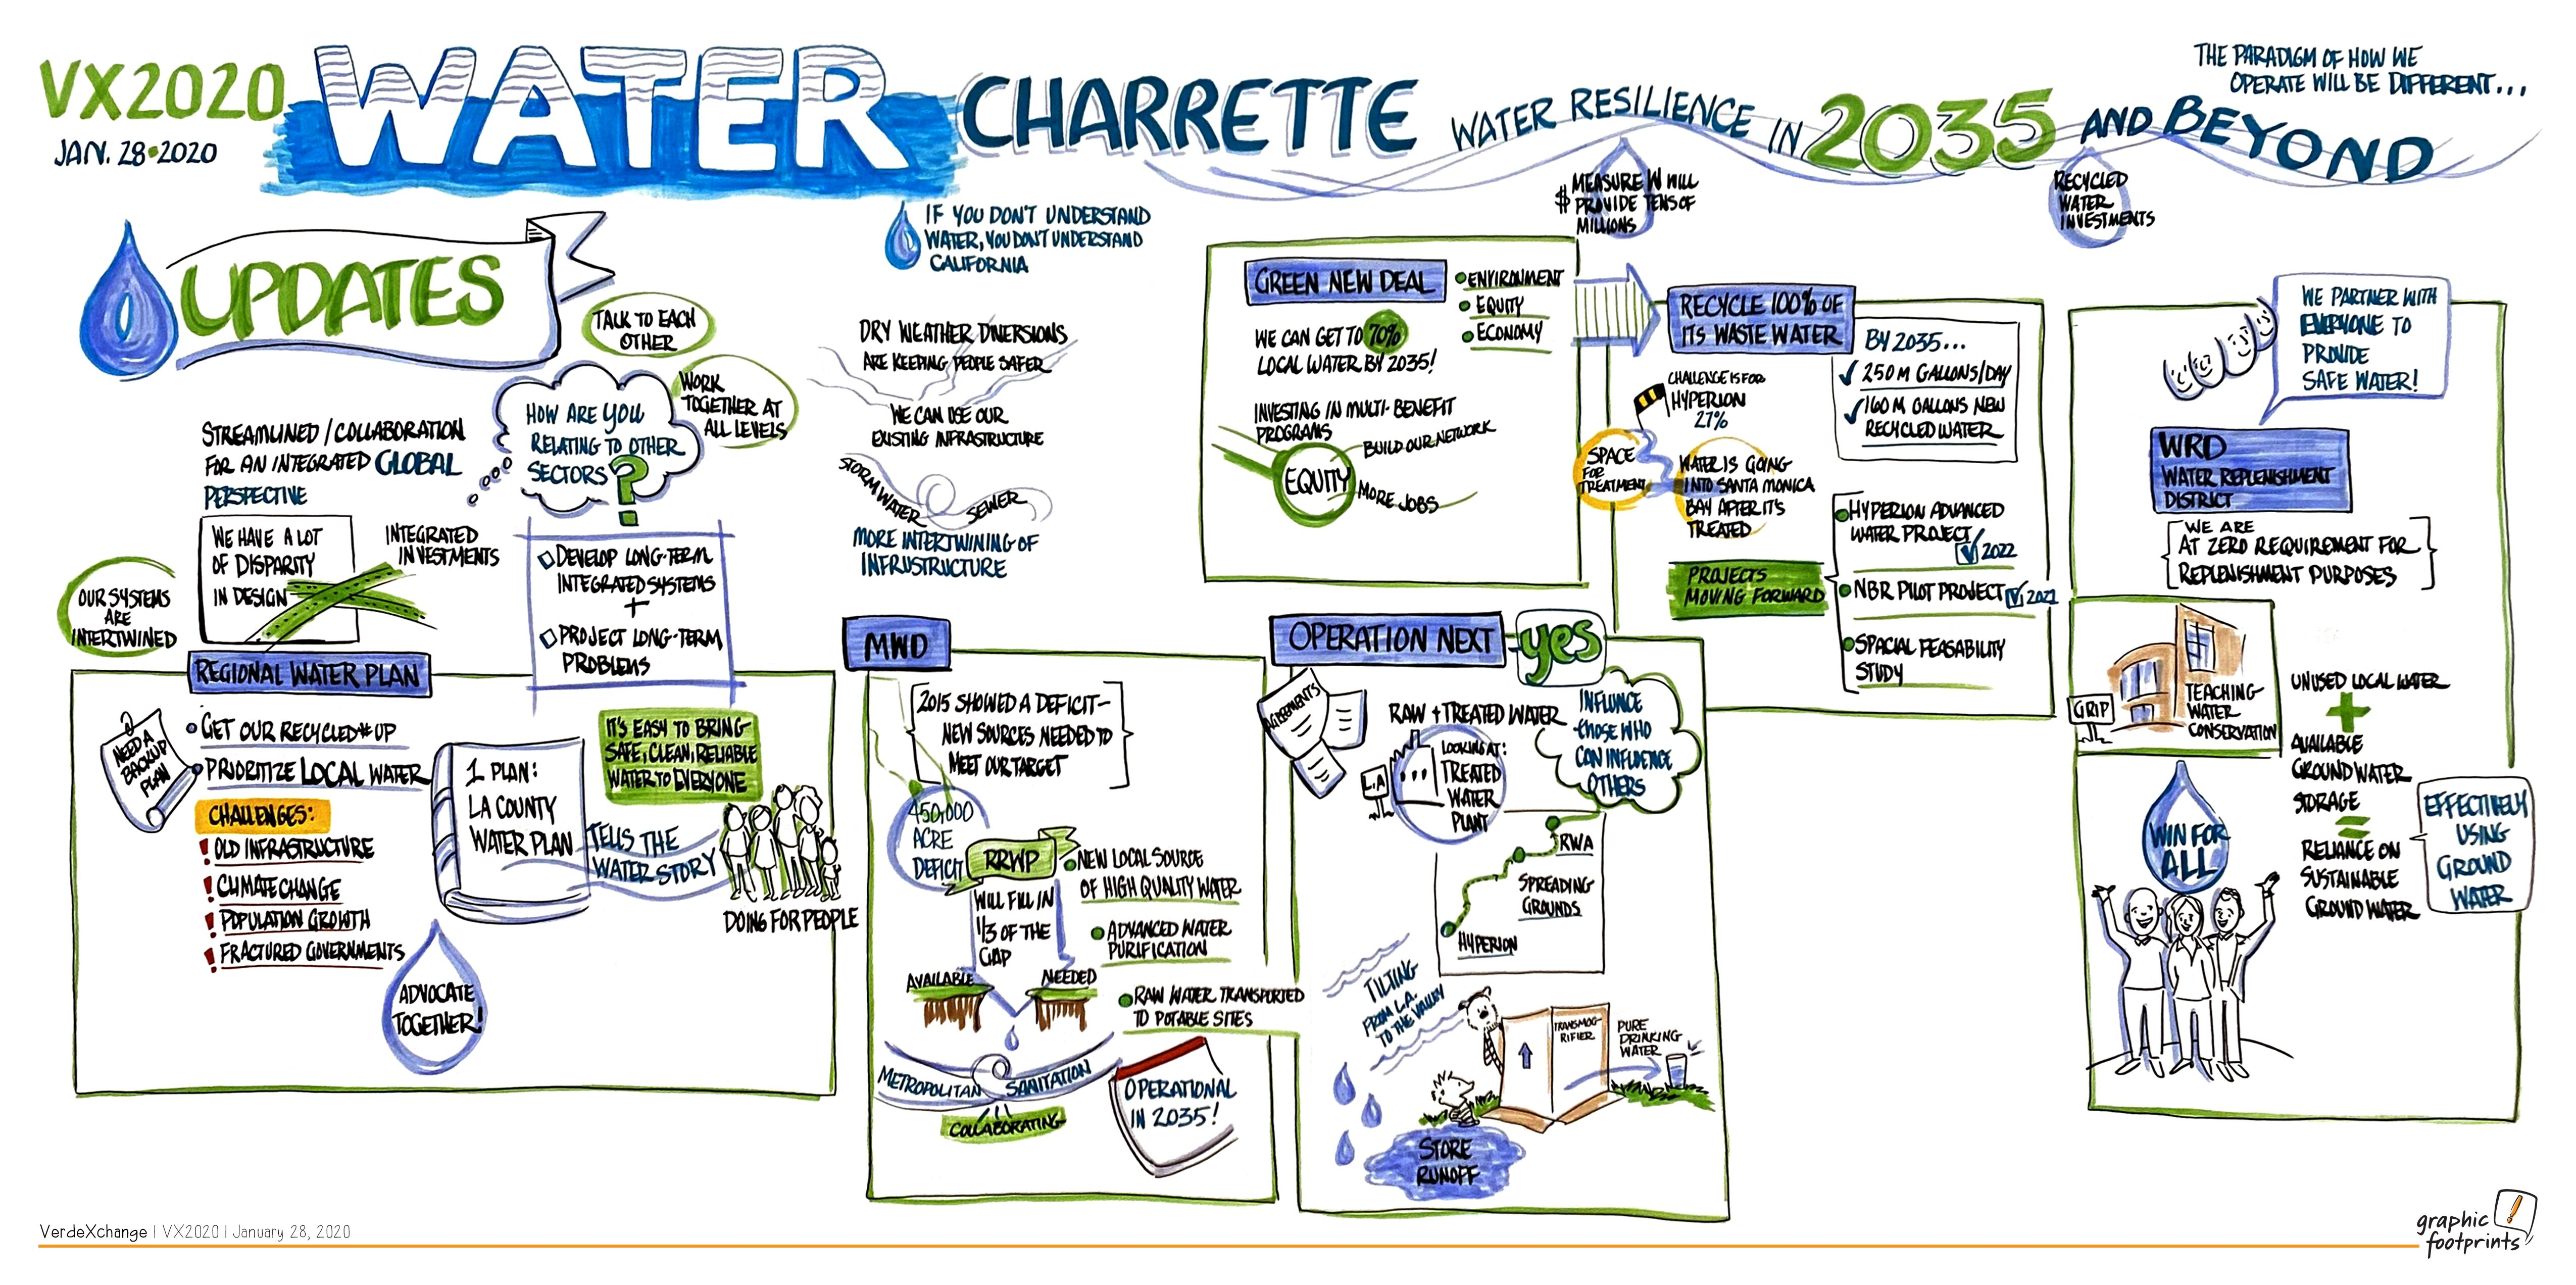 VX 2020 Water Charrette Graphic